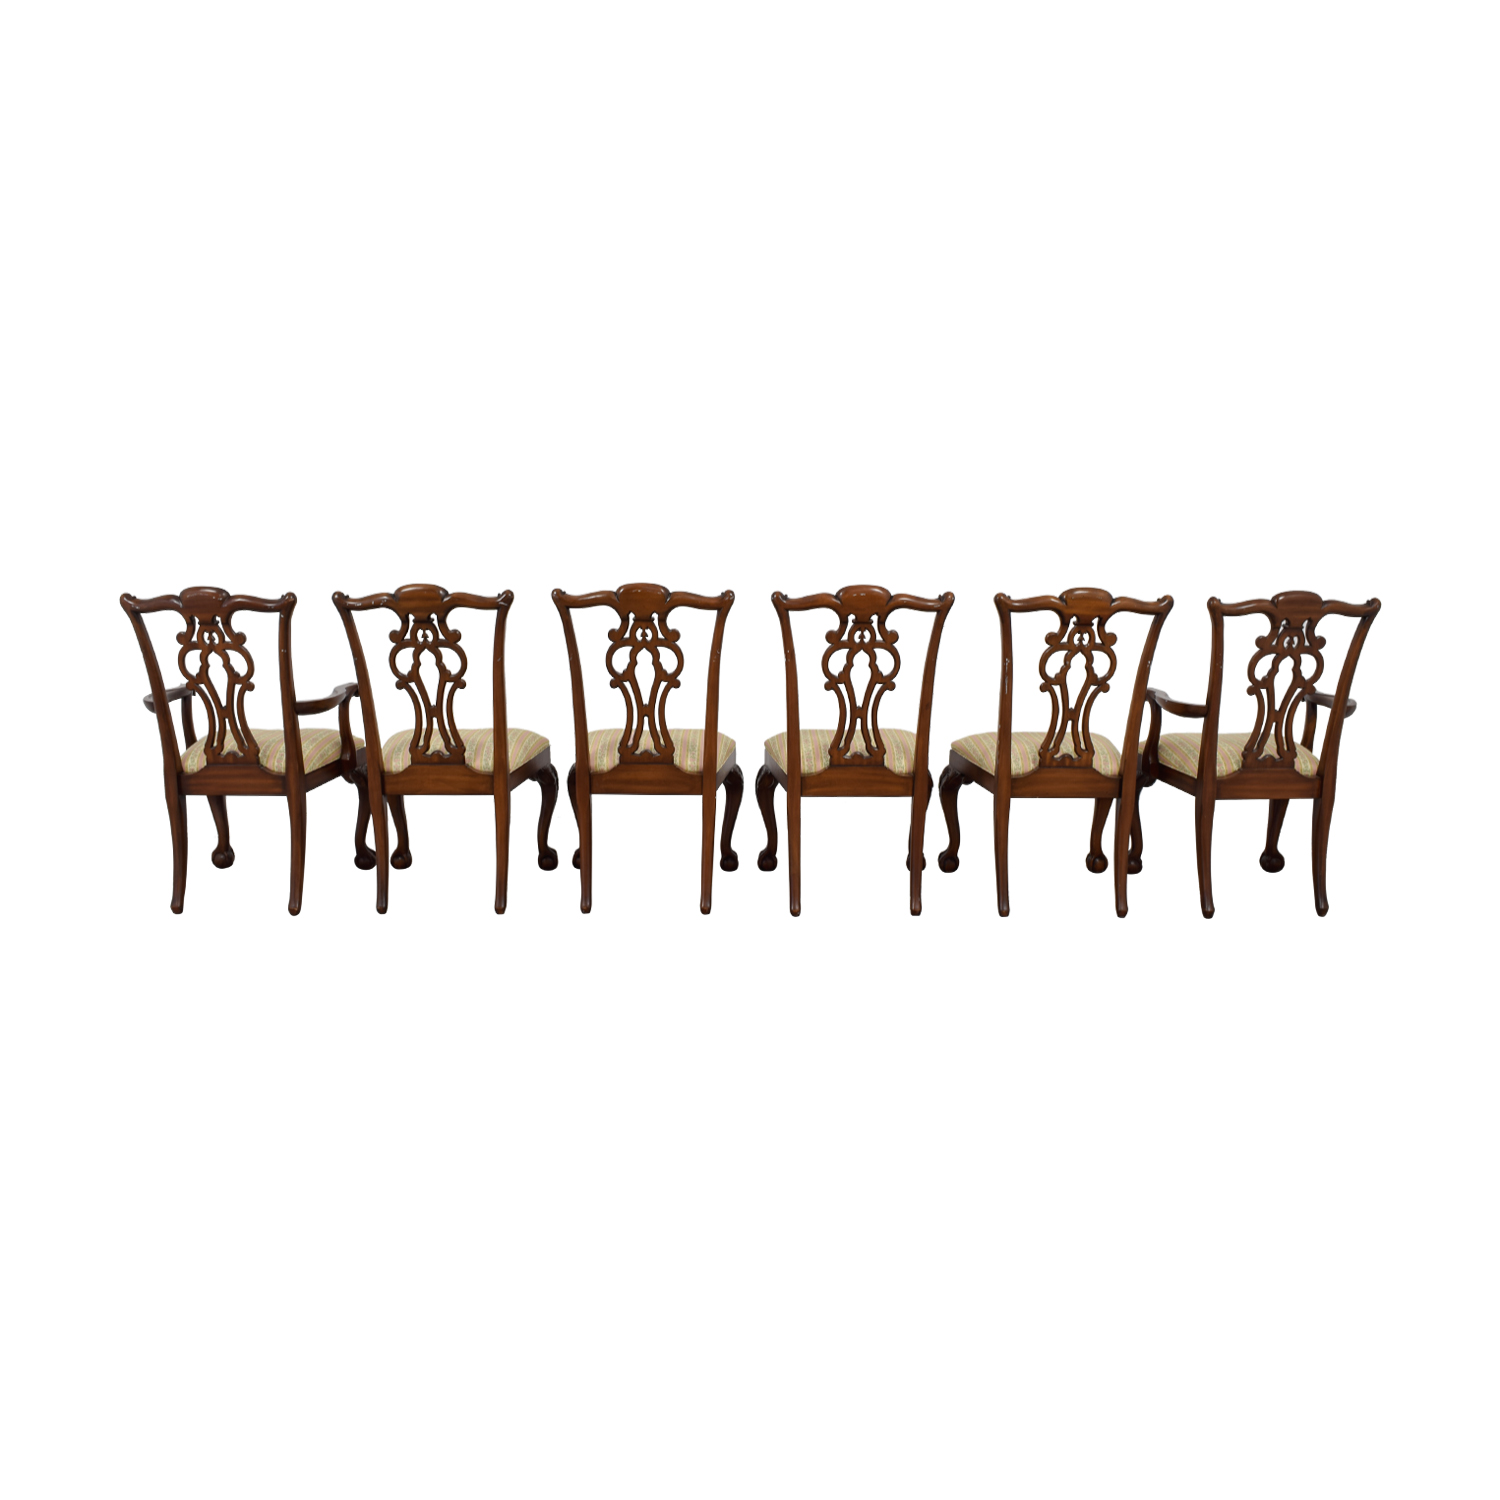 Ethan Allen Ethan Allen Brown Wood and Fabric Dining Chairs for sale